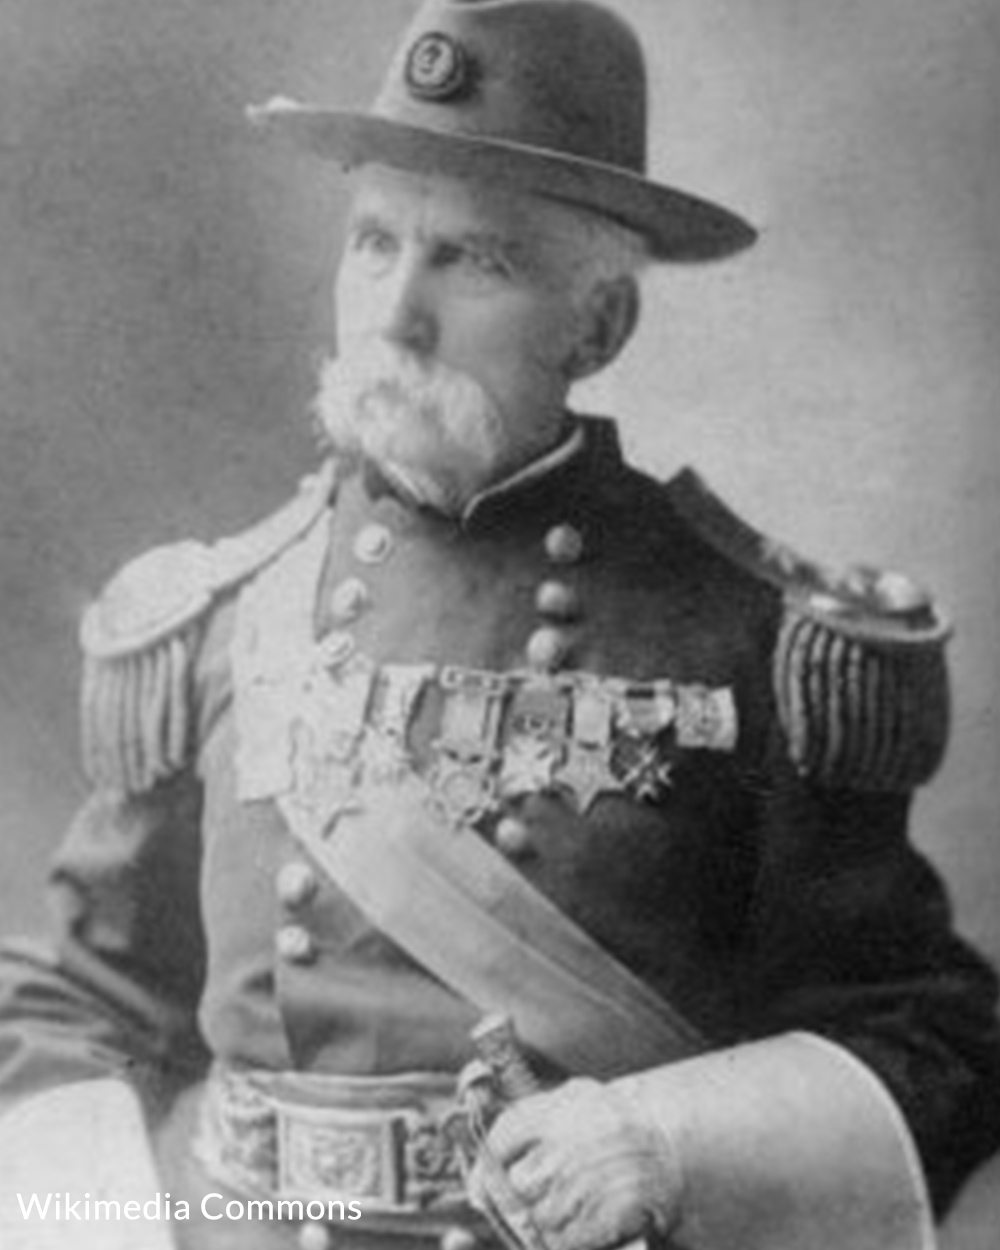 Chamberlain later in life with his Civil War uniform.